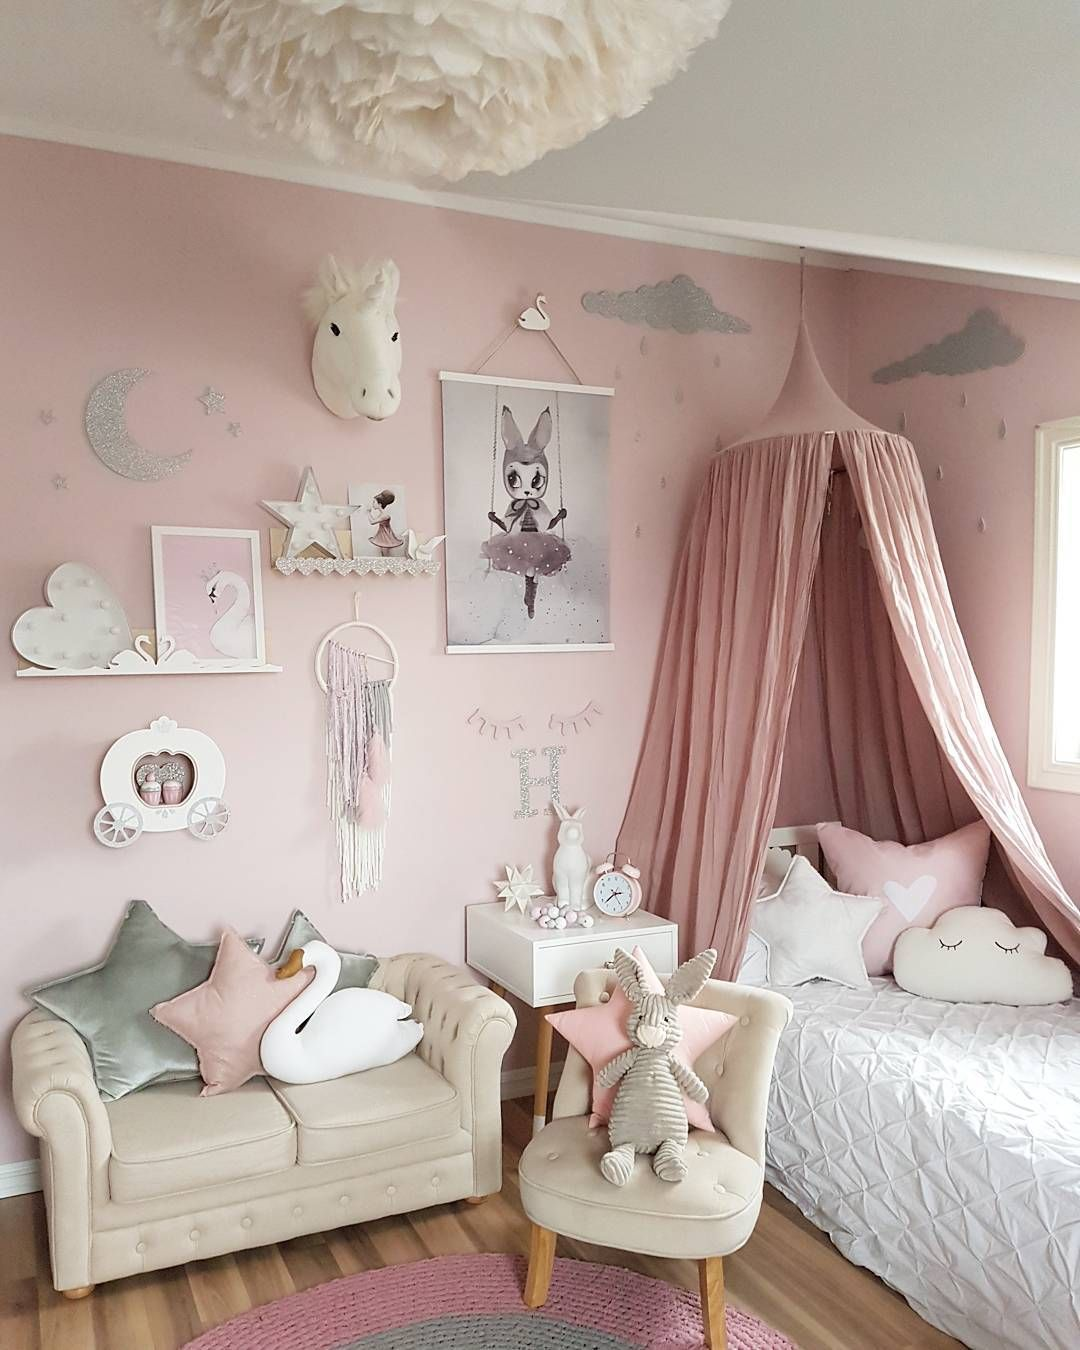 Bedroom Furniture Ideas Uk Bedroom Wall Decor For Girls Bedroom Designs For Girls Bedroom Cupboard Designs Images: 89.7k Followers, 999 Following, 412 Posts